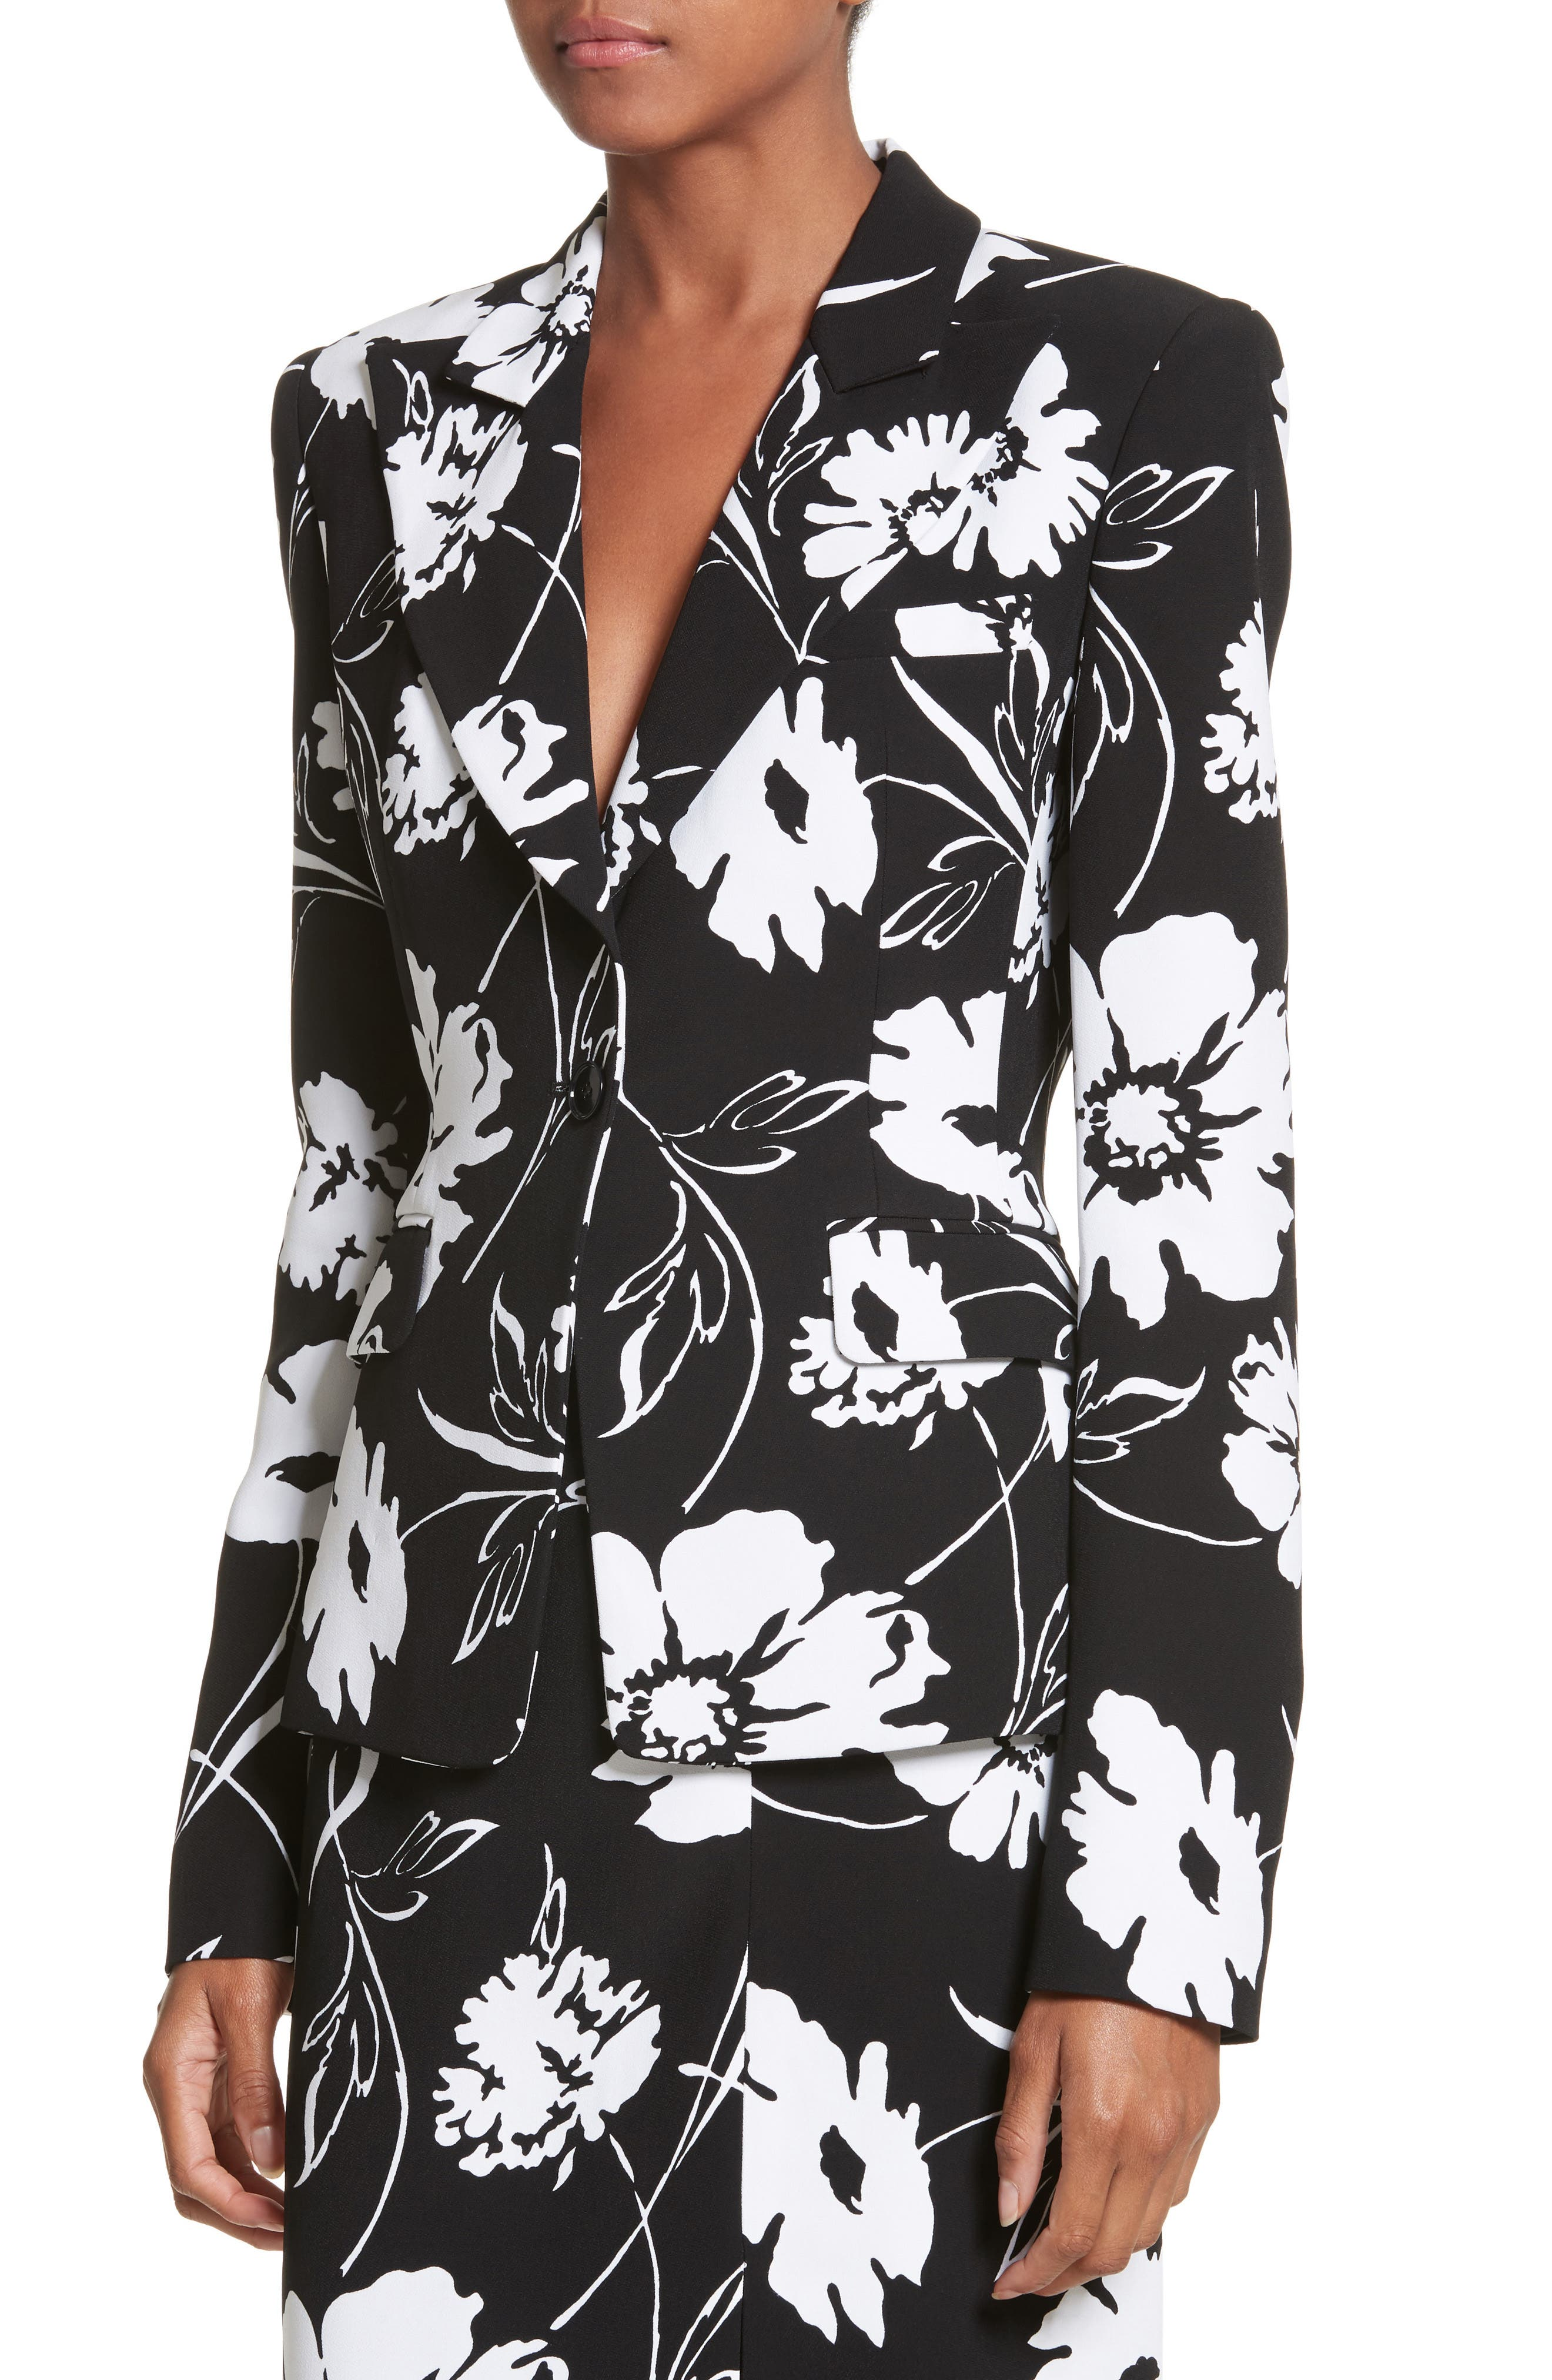 Floral Print Blazer,                             Alternate thumbnail 3, color,                             Black / White